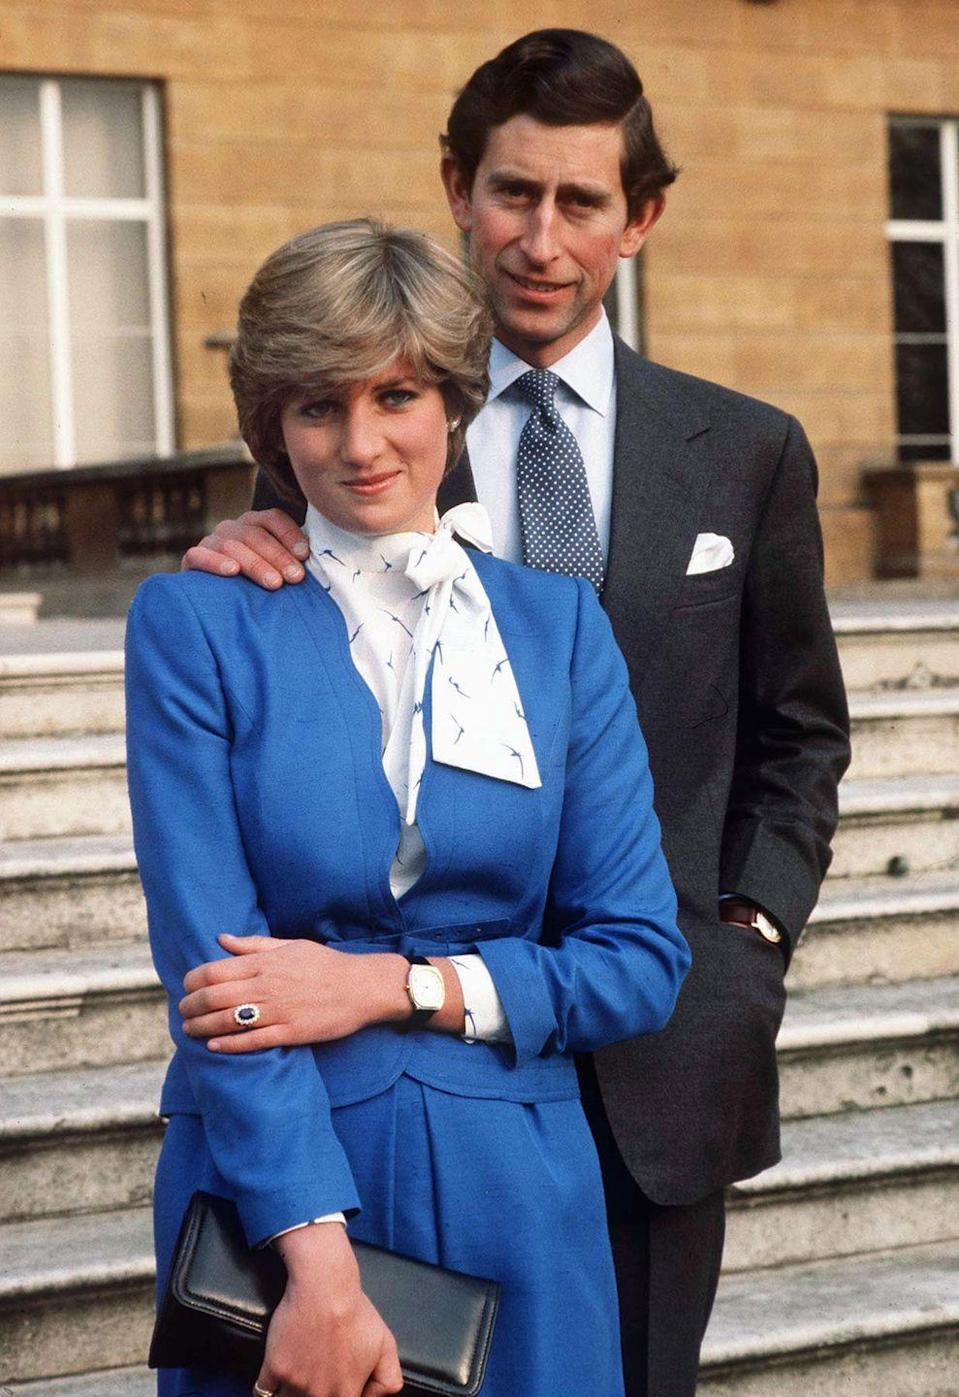 "<p>Lady Diana Spencer and Prince Charles announced their engagement in 1981 on the steps of Buckingham Palace. The future Princess selected the ring herself from a Garrard catalogue. Some say that the <a href=""https://www.goodhousekeeping.com/life/a22727712/princess-diana-engagement-ring/"" rel=""nofollow noopener"" target=""_blank"" data-ylk=""slk:Palace was upset with the ring selection"" class=""link rapid-noclick-resp"">Palace was upset with the ring selection</a>, because it wasn't a rare jewel and could be purchased by anyone at the time. </p>"